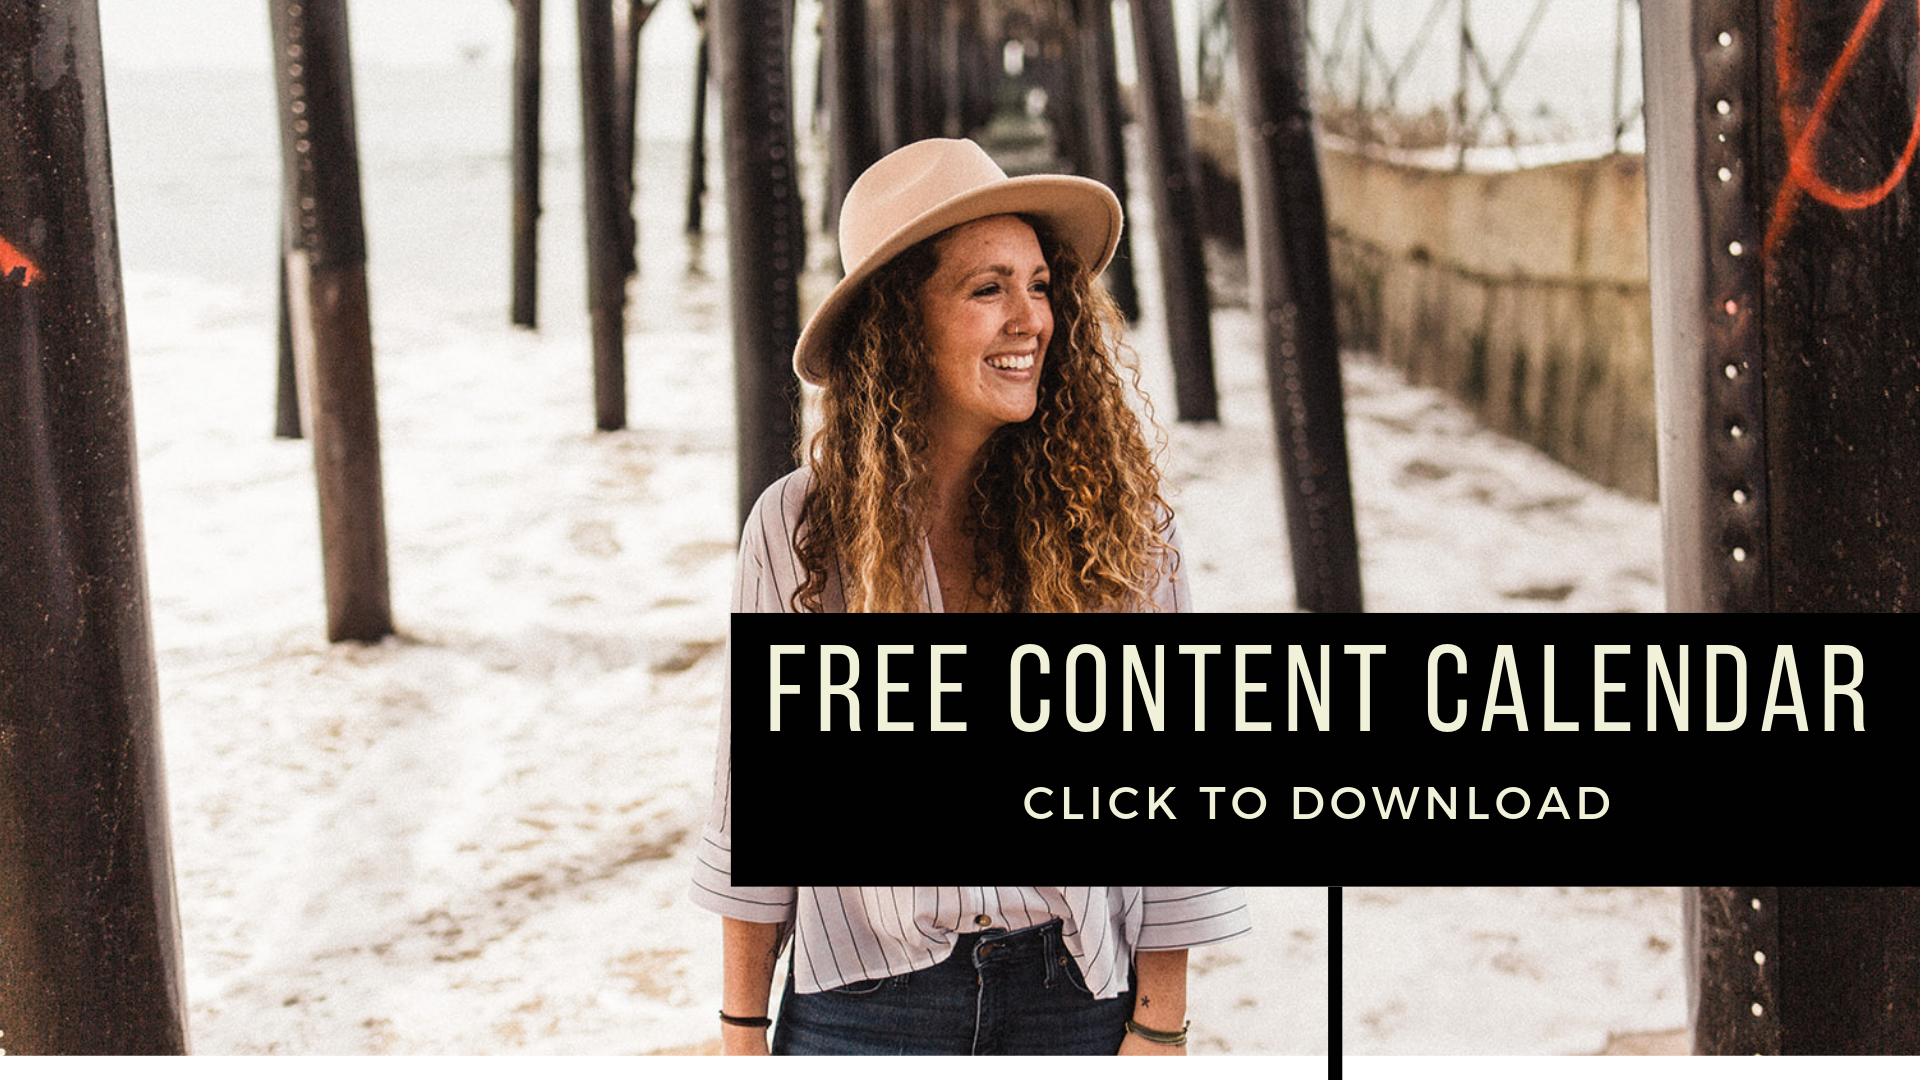 Download this free training and resource to map out your next 30 days of content with ease. Organize your ideas, posting schedule and more with this planner and bonus video training.